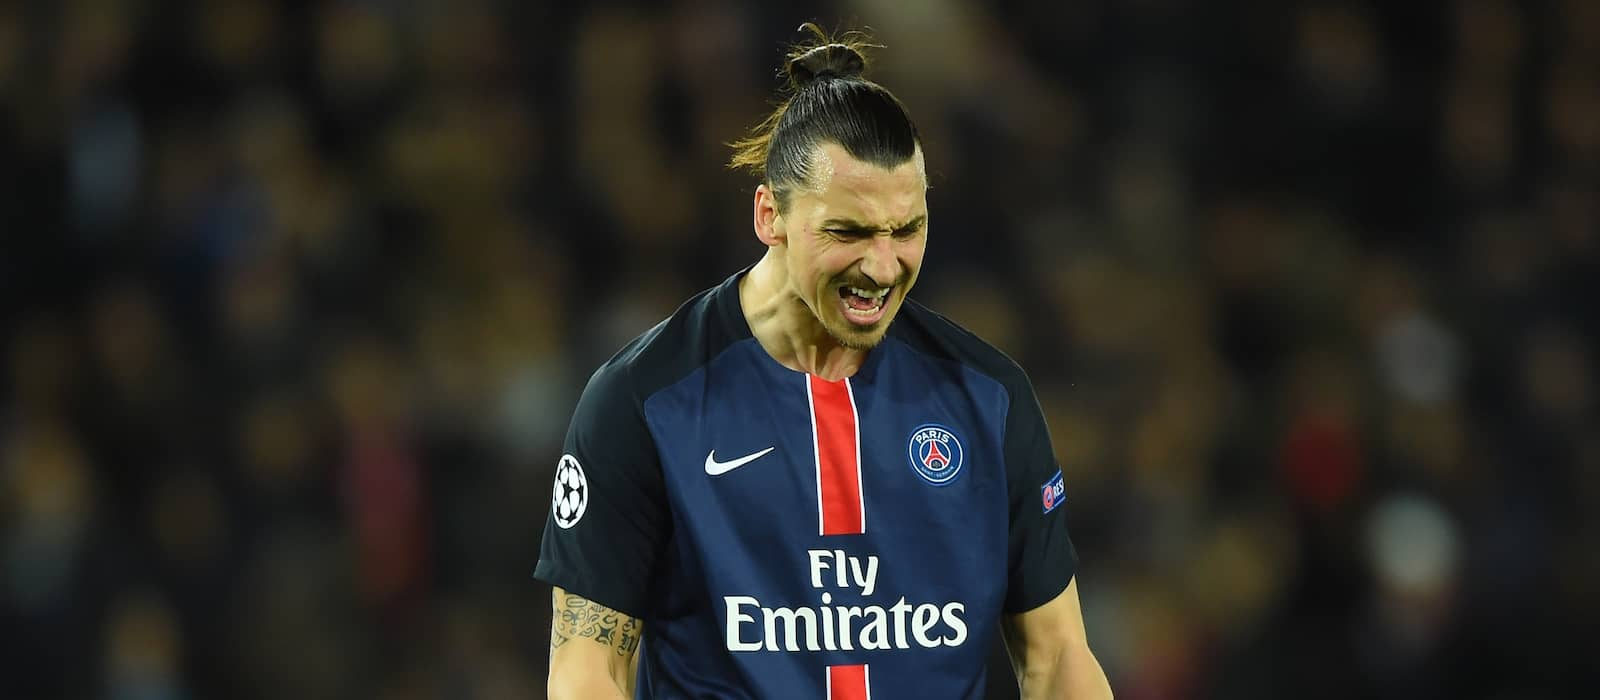 Fans' view: Louis van Gaal out, Zlatan Ibrahimovic in